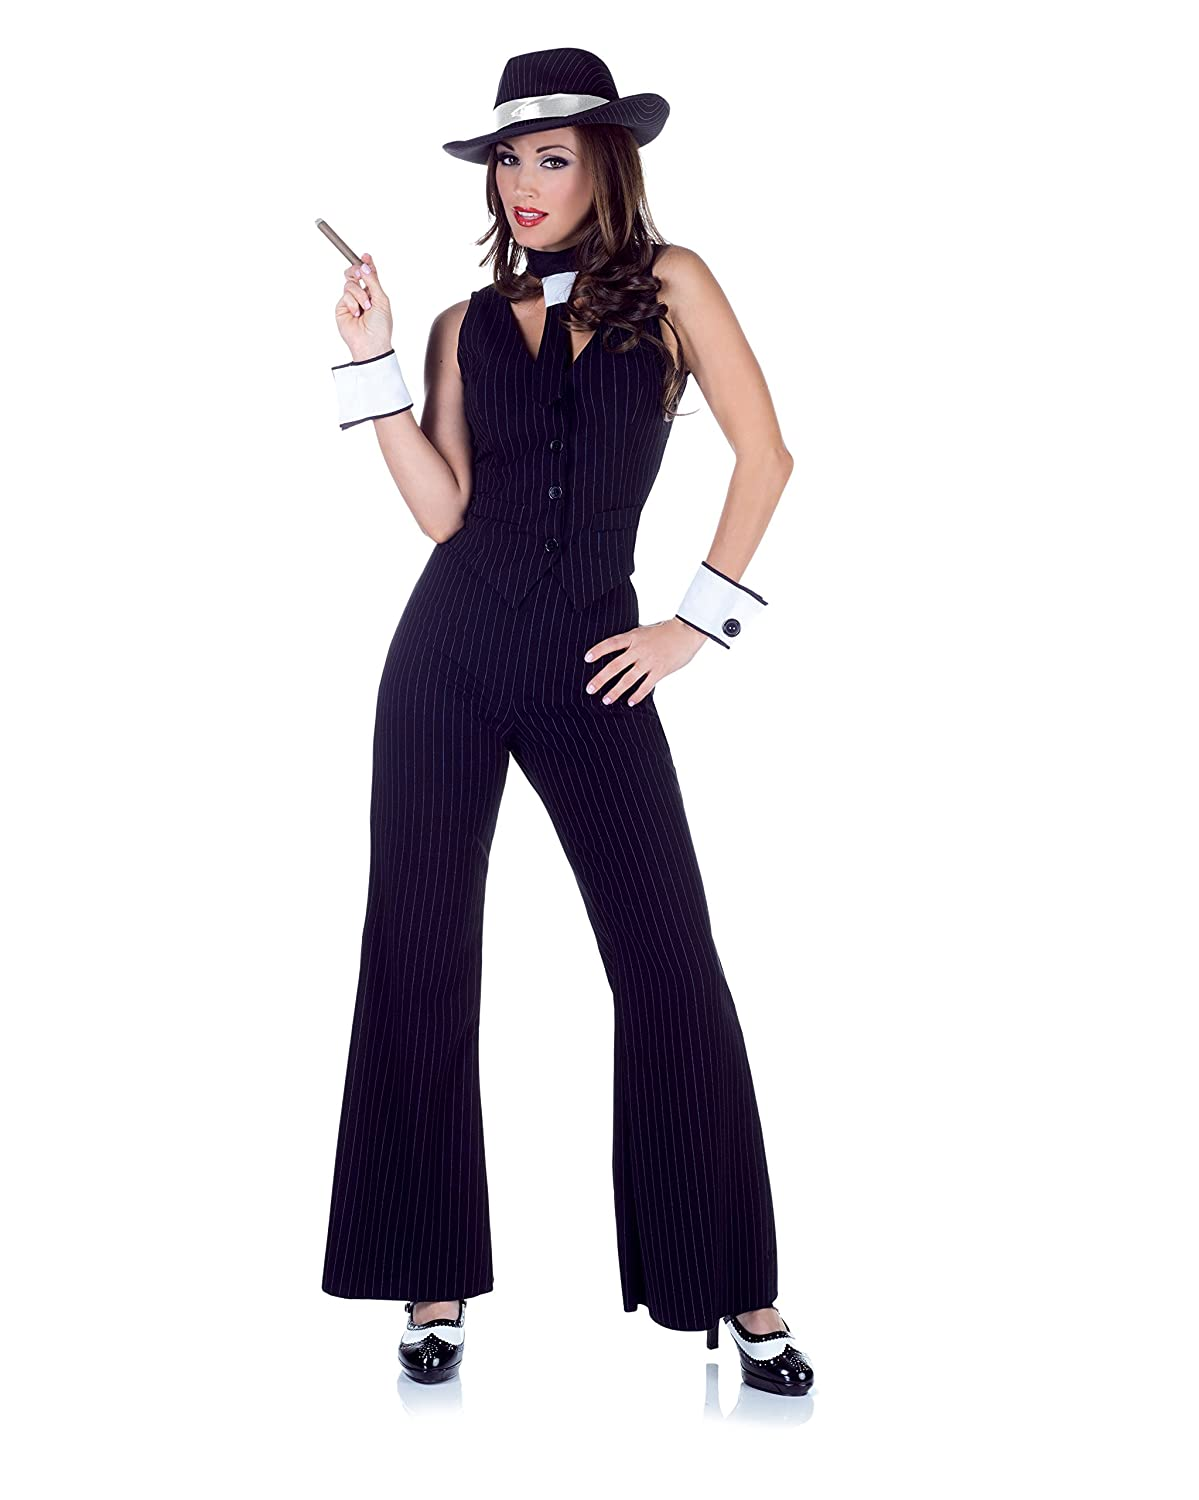 Gangster Costumes & Outfits | Women's and Men's Underwraps Costumes Womens Gangster Costume - Bugsy $53.52 AT vintagedancer.com